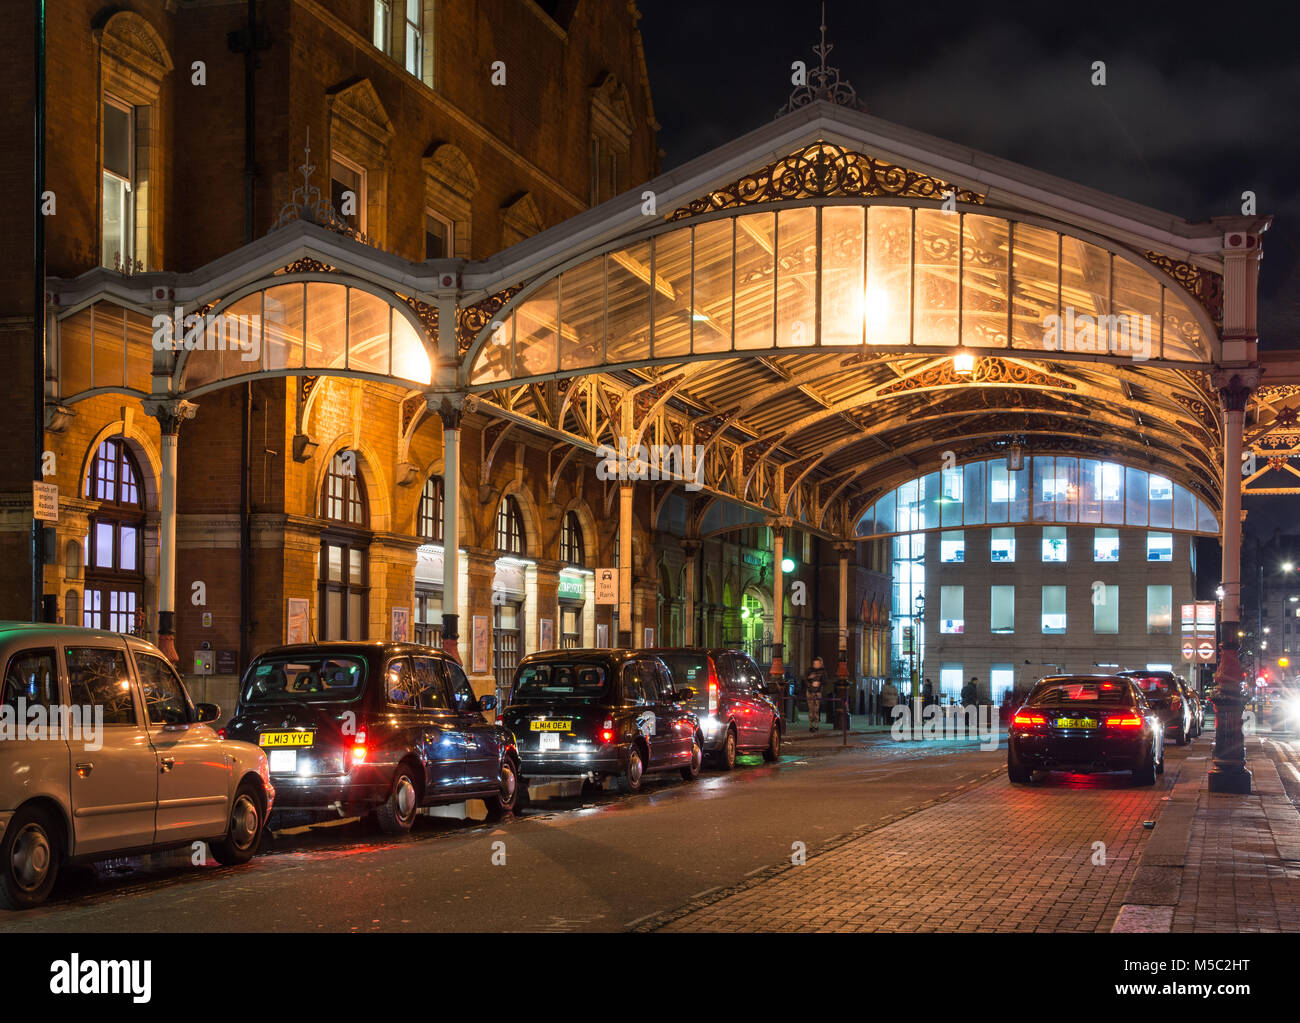 London, England, UK - January 16, 2018: Traditional London taxis queue to pick up commuters at Chiltern Railways' Stock Photo